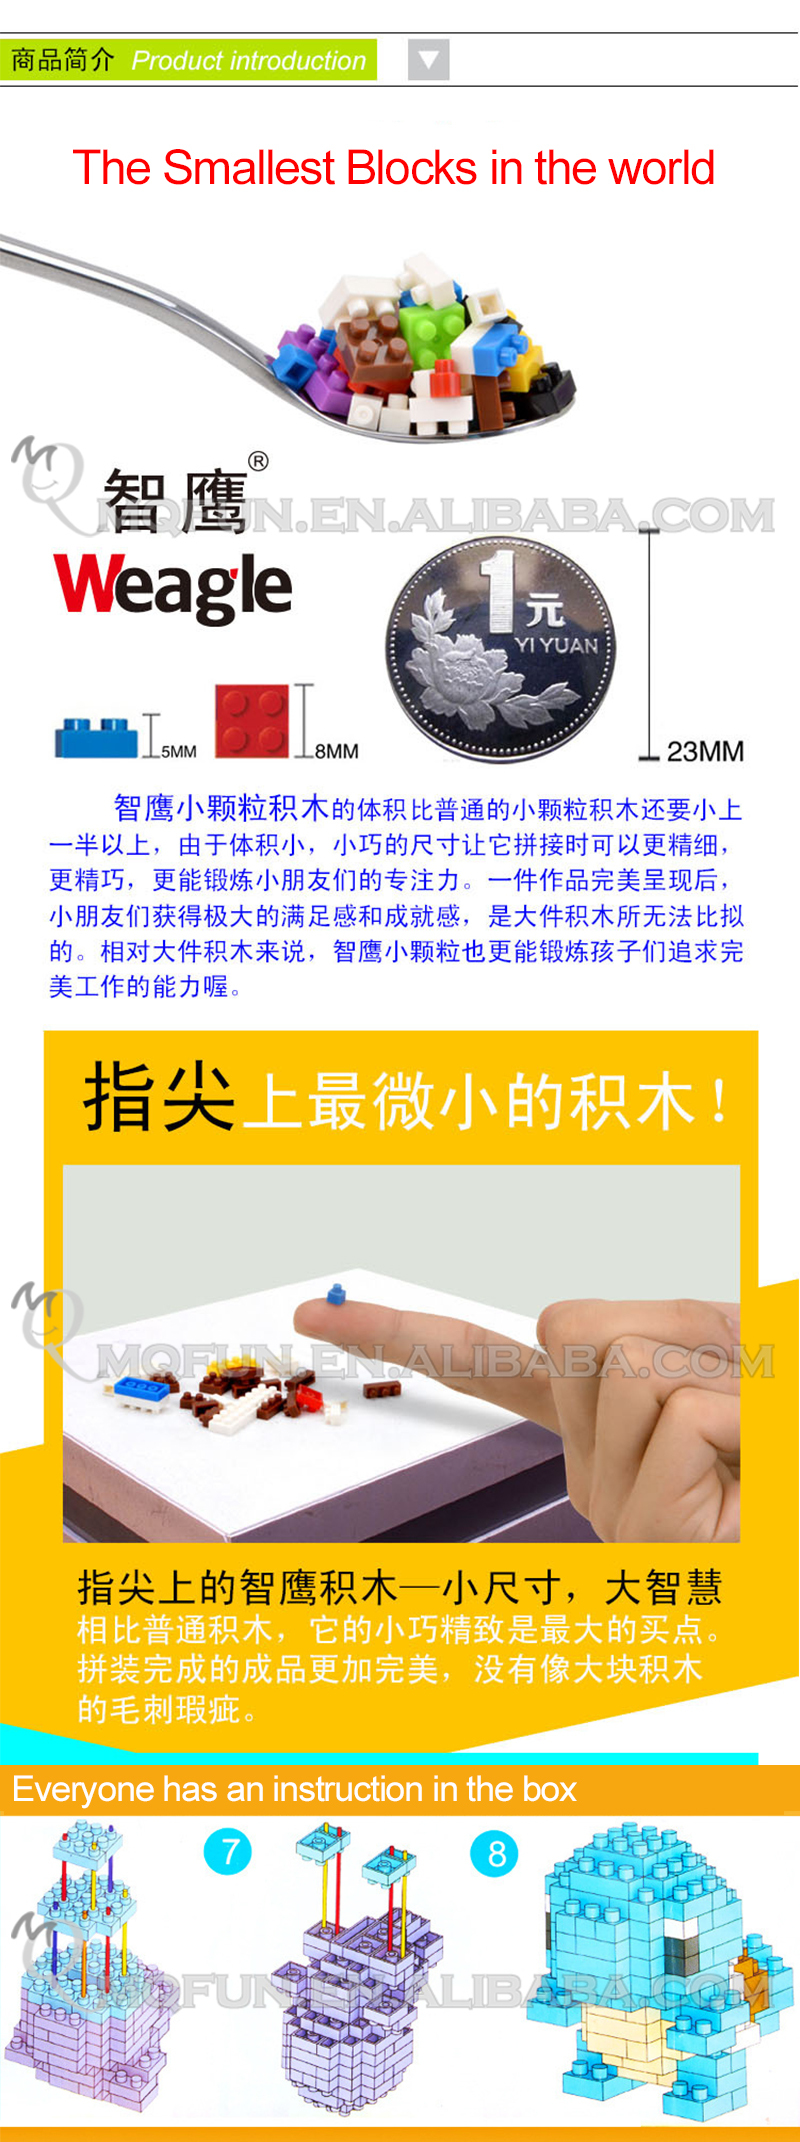 Mini Qute HC 4 IN 1 Japanese kimono doll plastic building block cartoon model action figures education educational toy